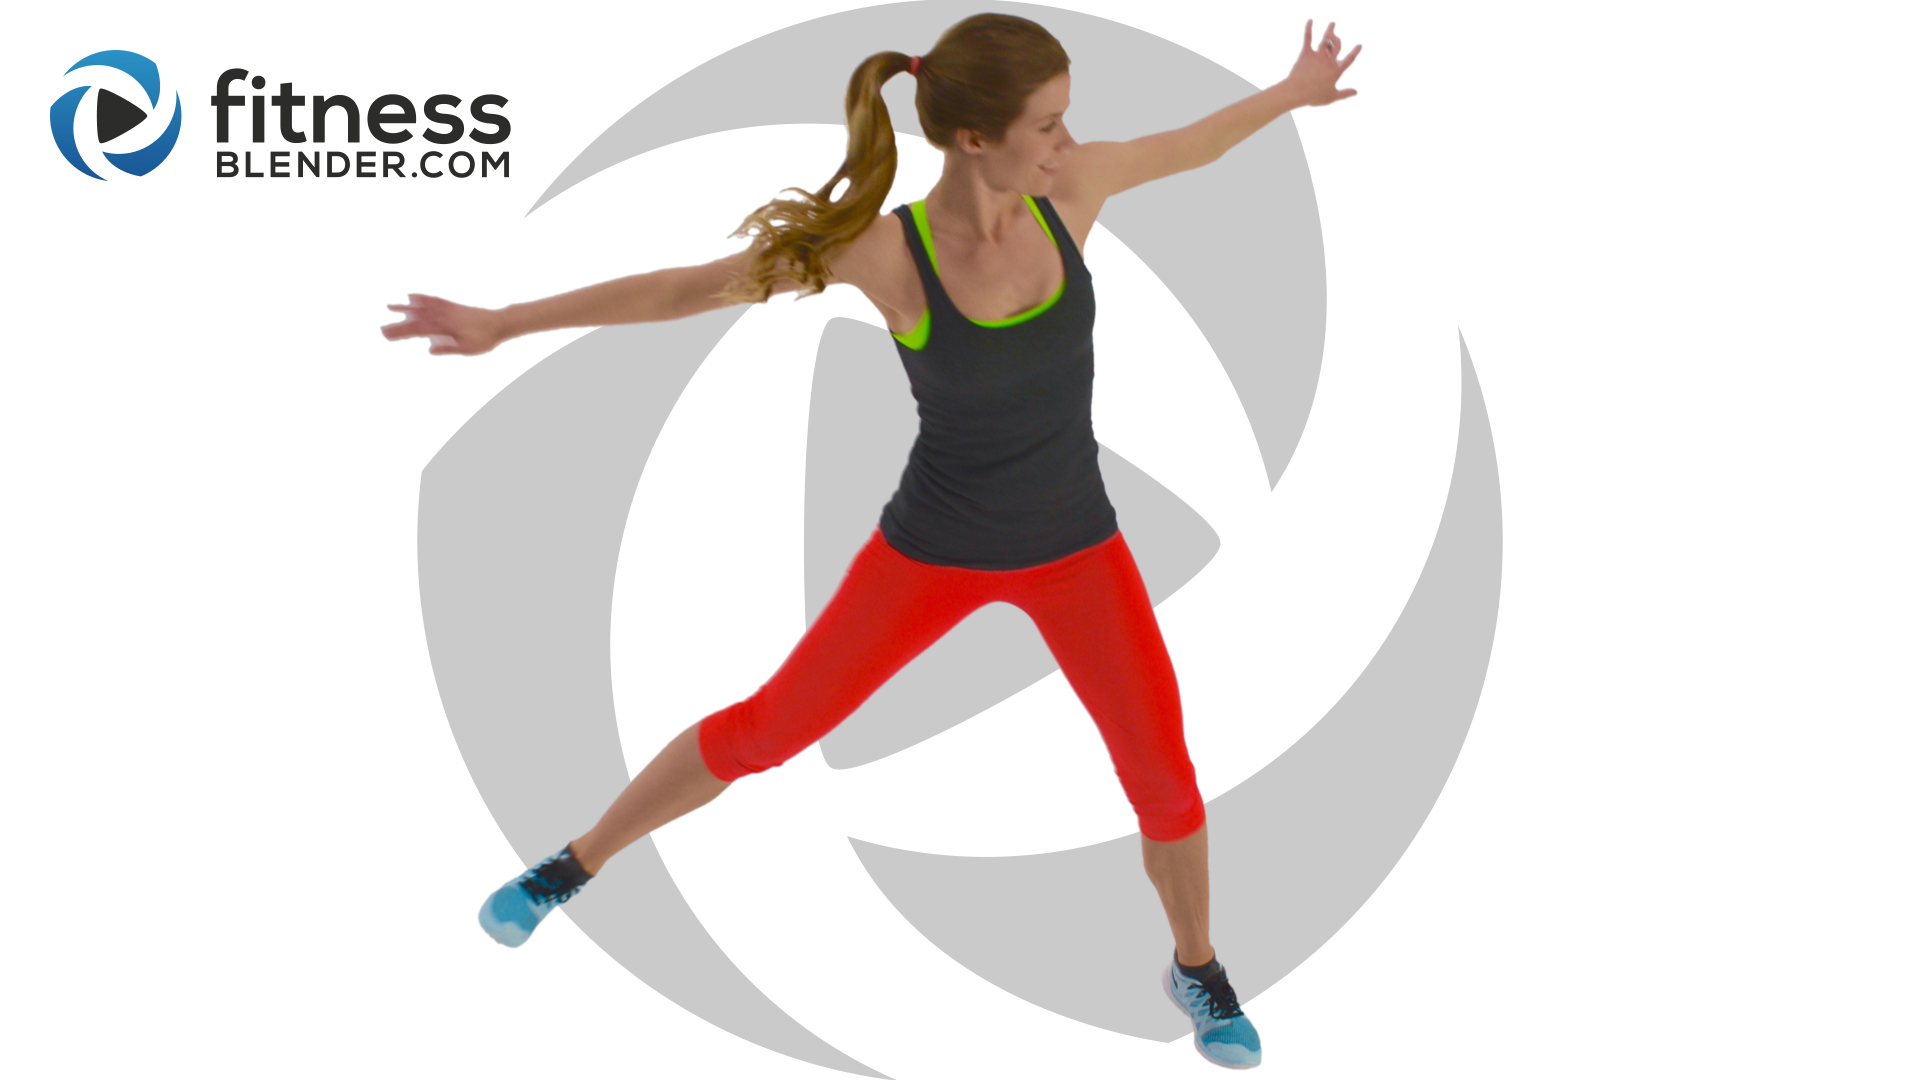 Wake Up Call Cardio Workout Calorie Burning Warm For Energy Fitness Blender